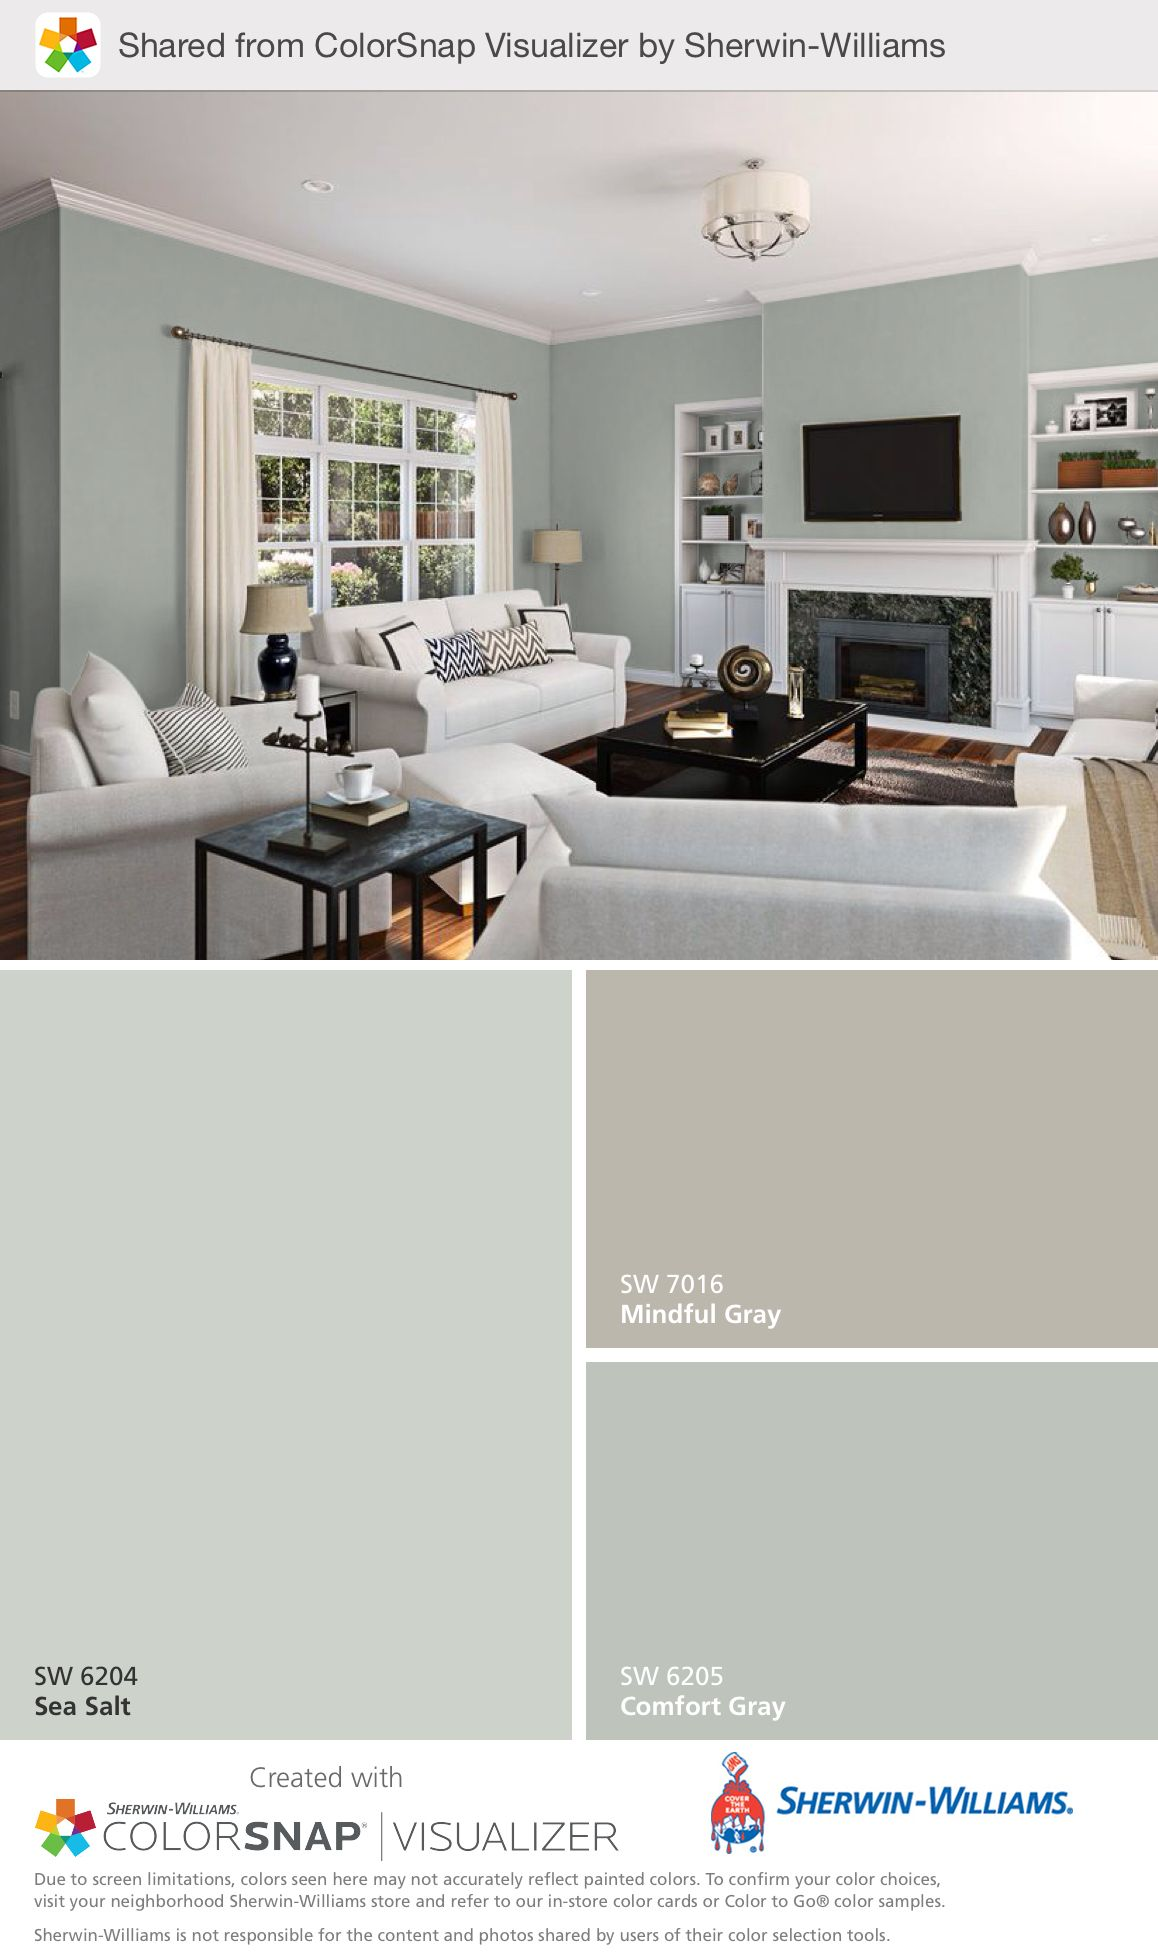 Living Room Wall Color Samples sherwin williams comfort gray (daylight) this color is absolutely